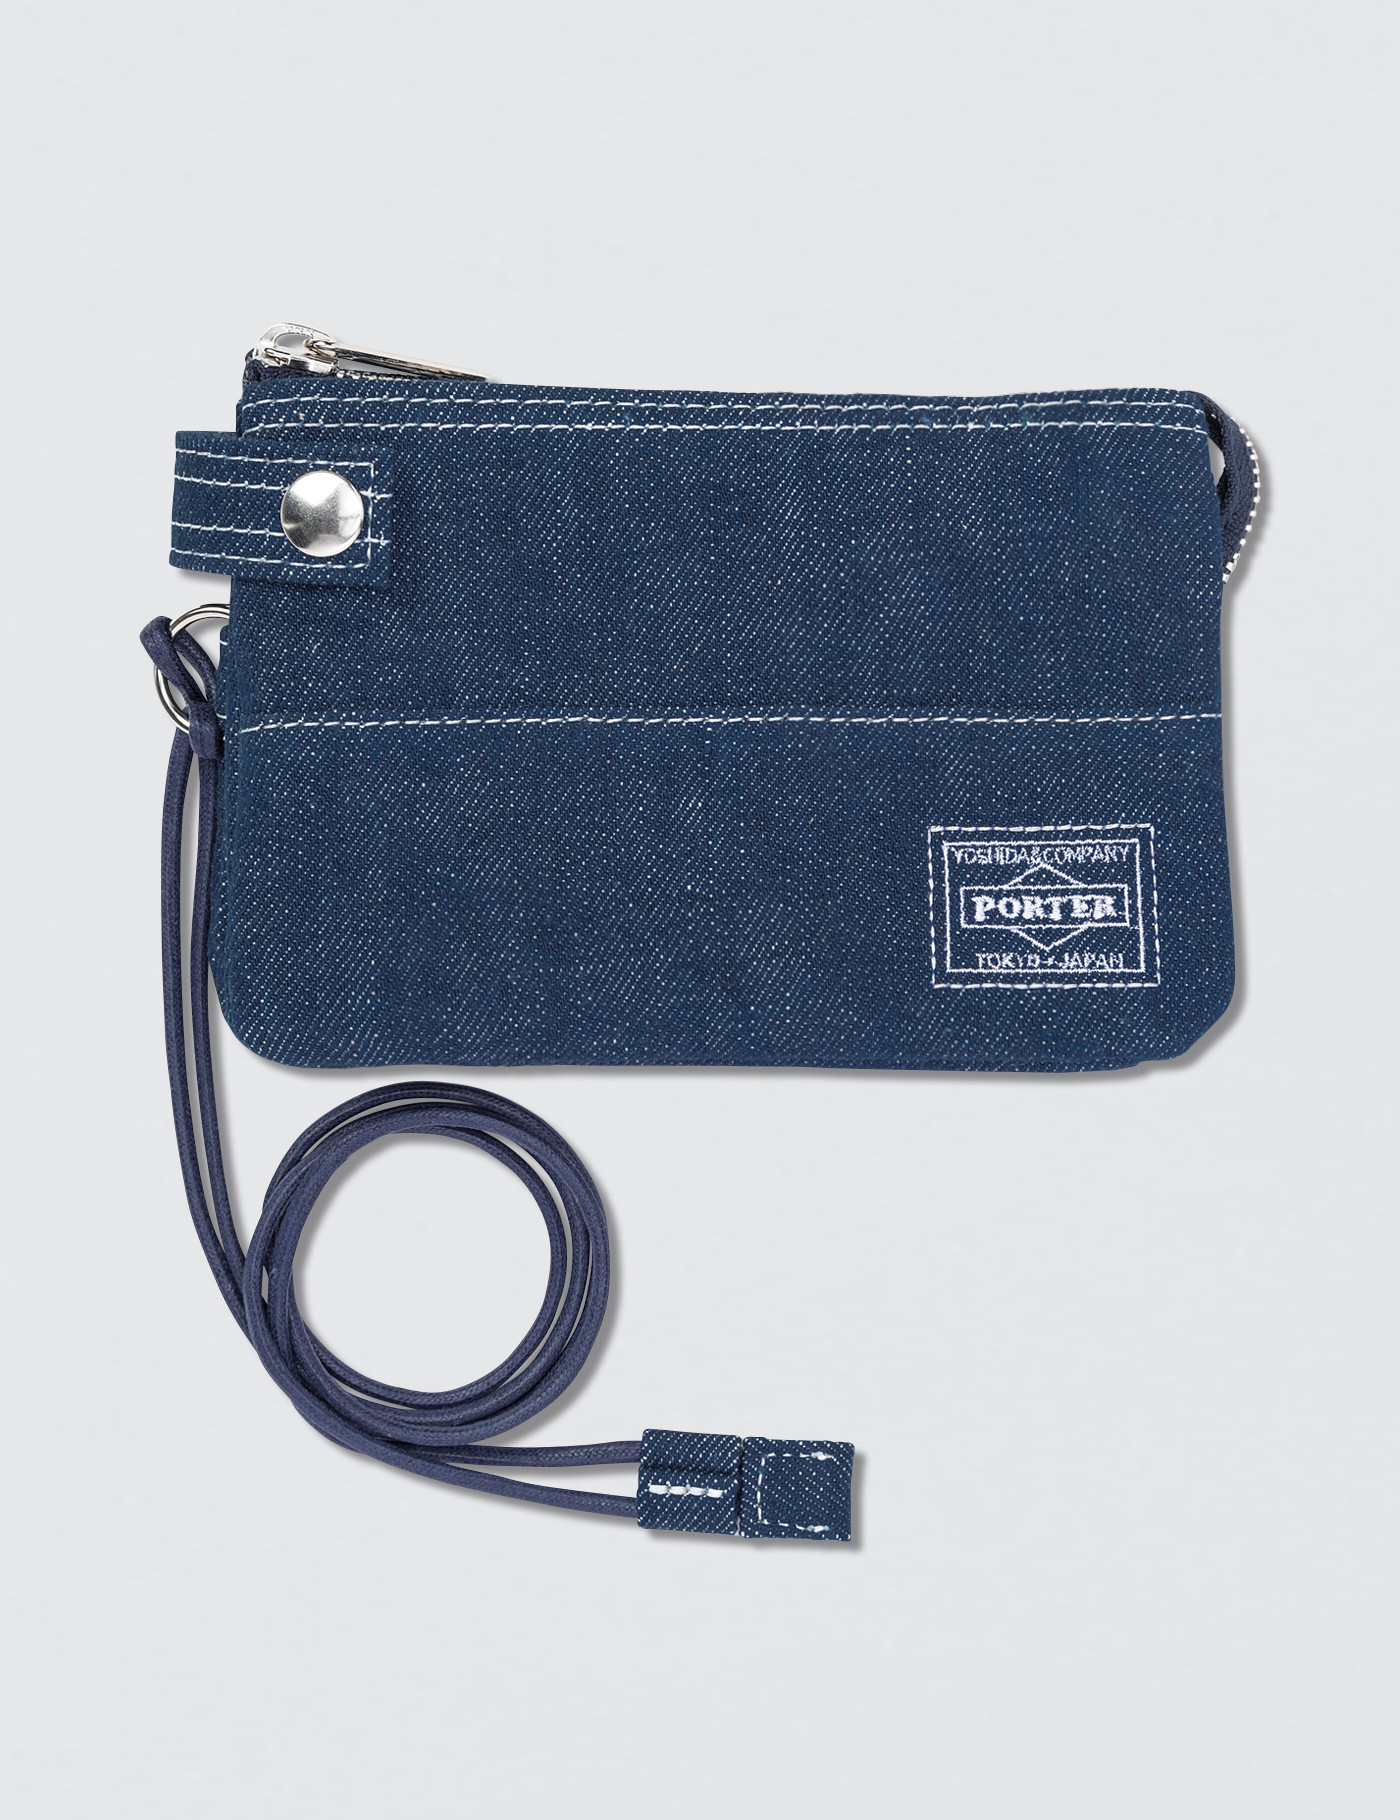 Buy Original Head Porter Denim Zip Wallet at Indonesia  2fb0509c8cc1a